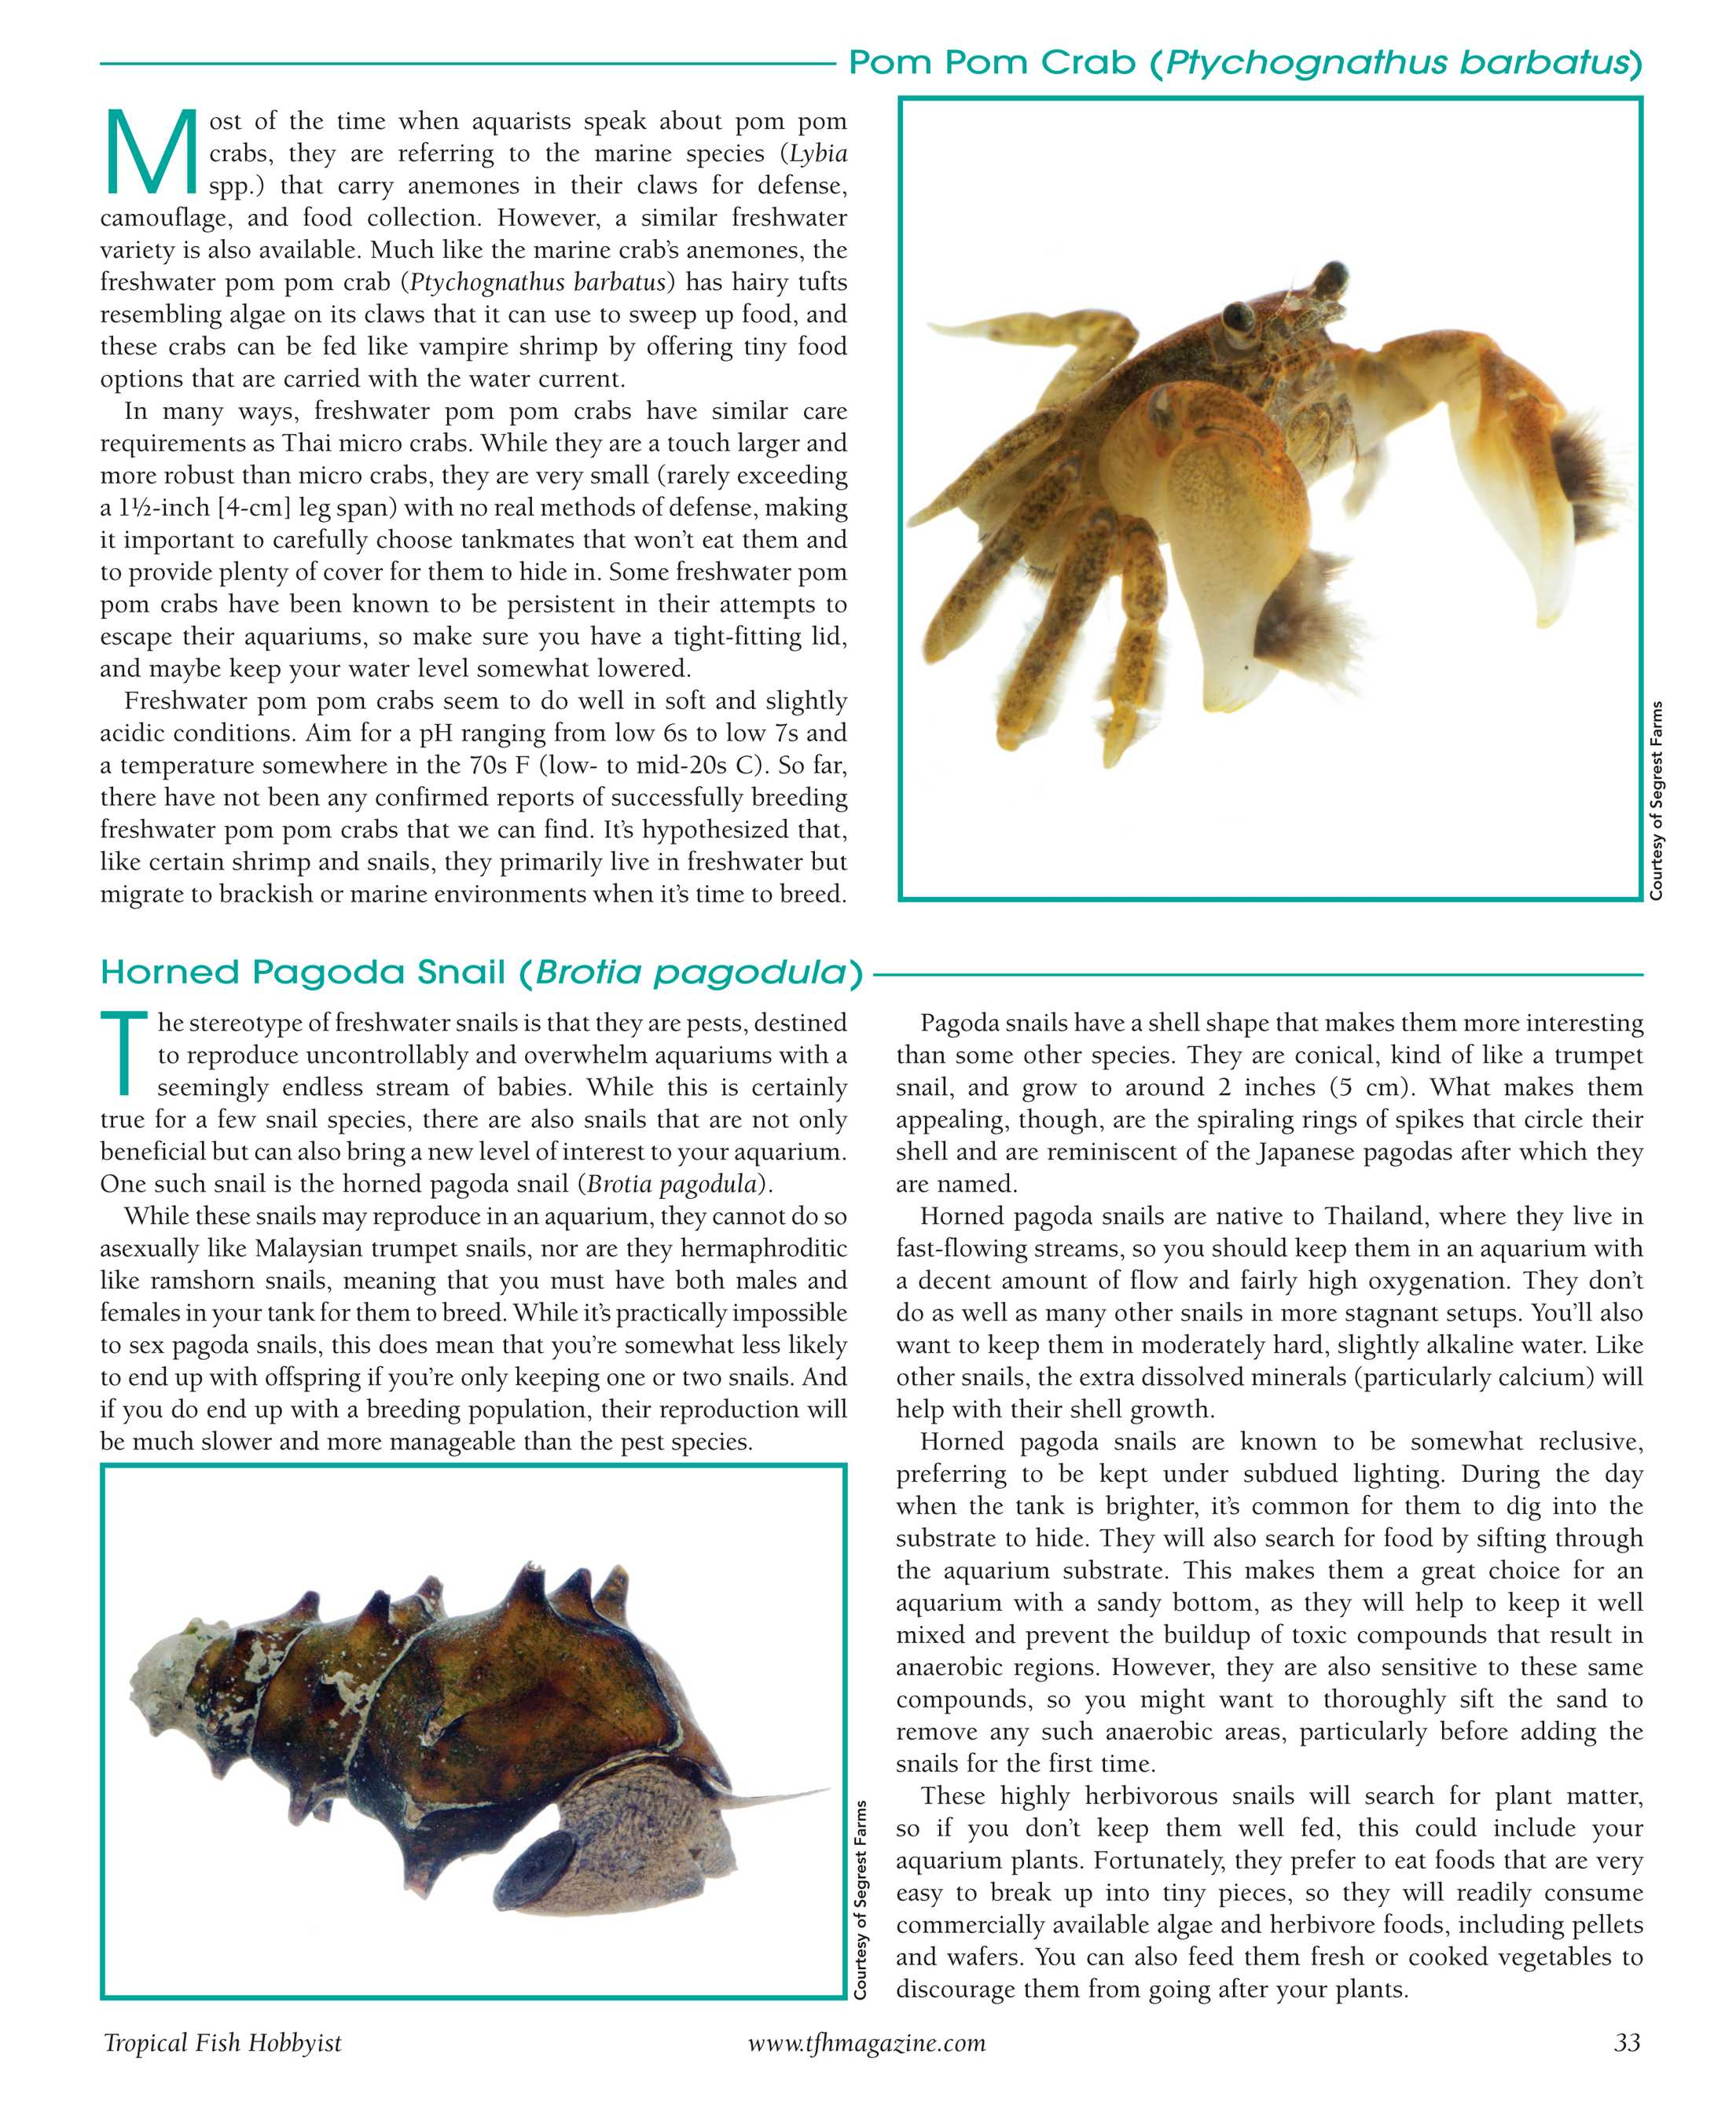 Tropical Fish Hobbyist - Nov/Dec 2017 - page 28